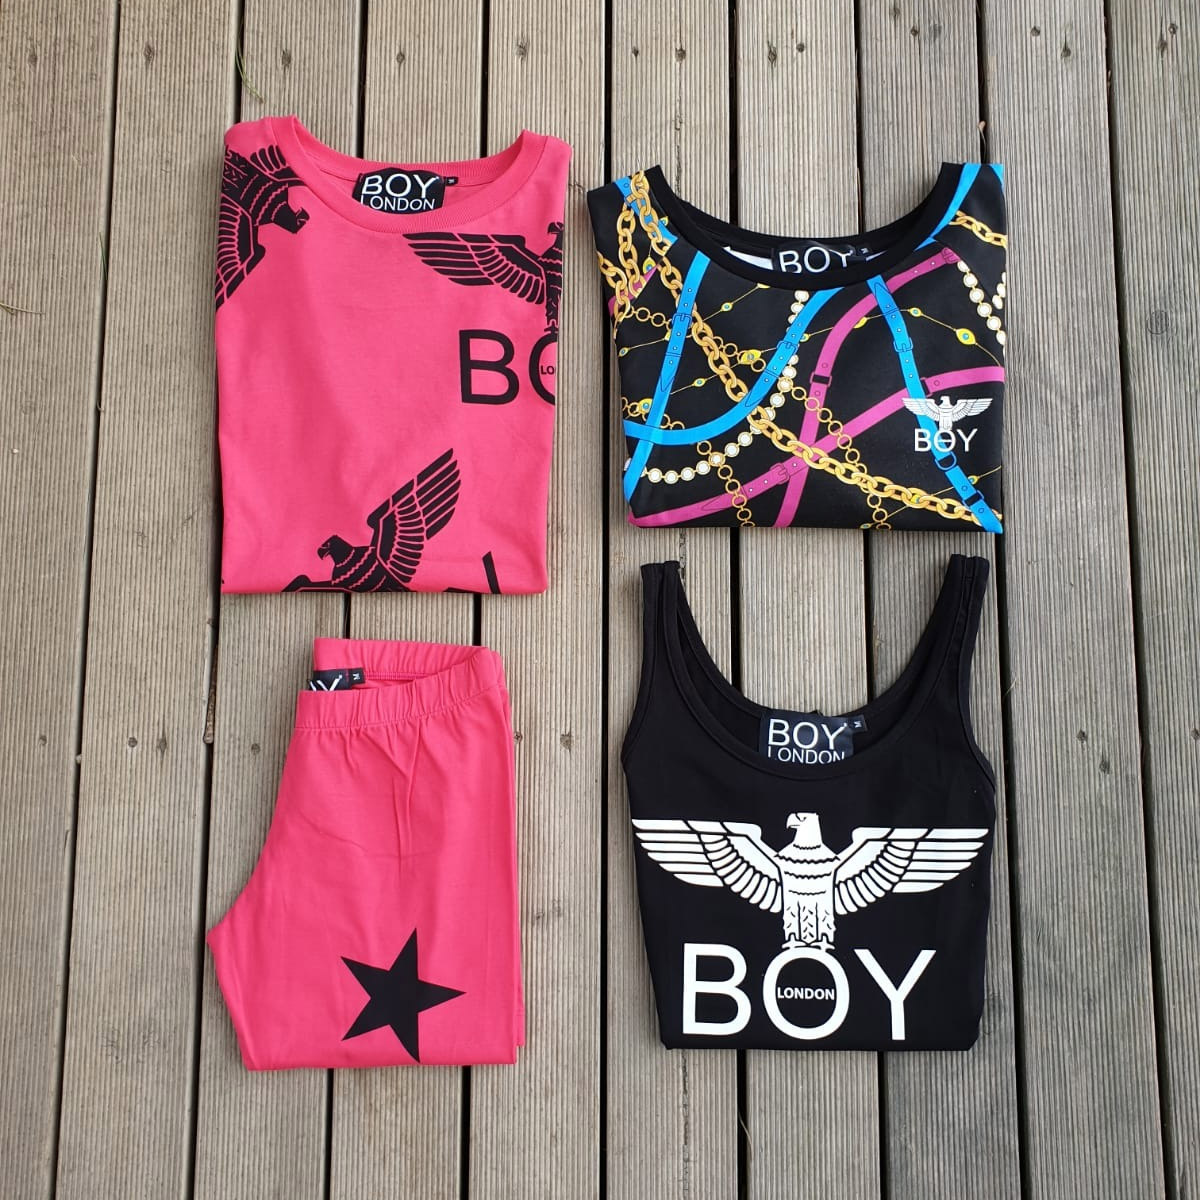 Boy London Donna - Unionmoda Outlet